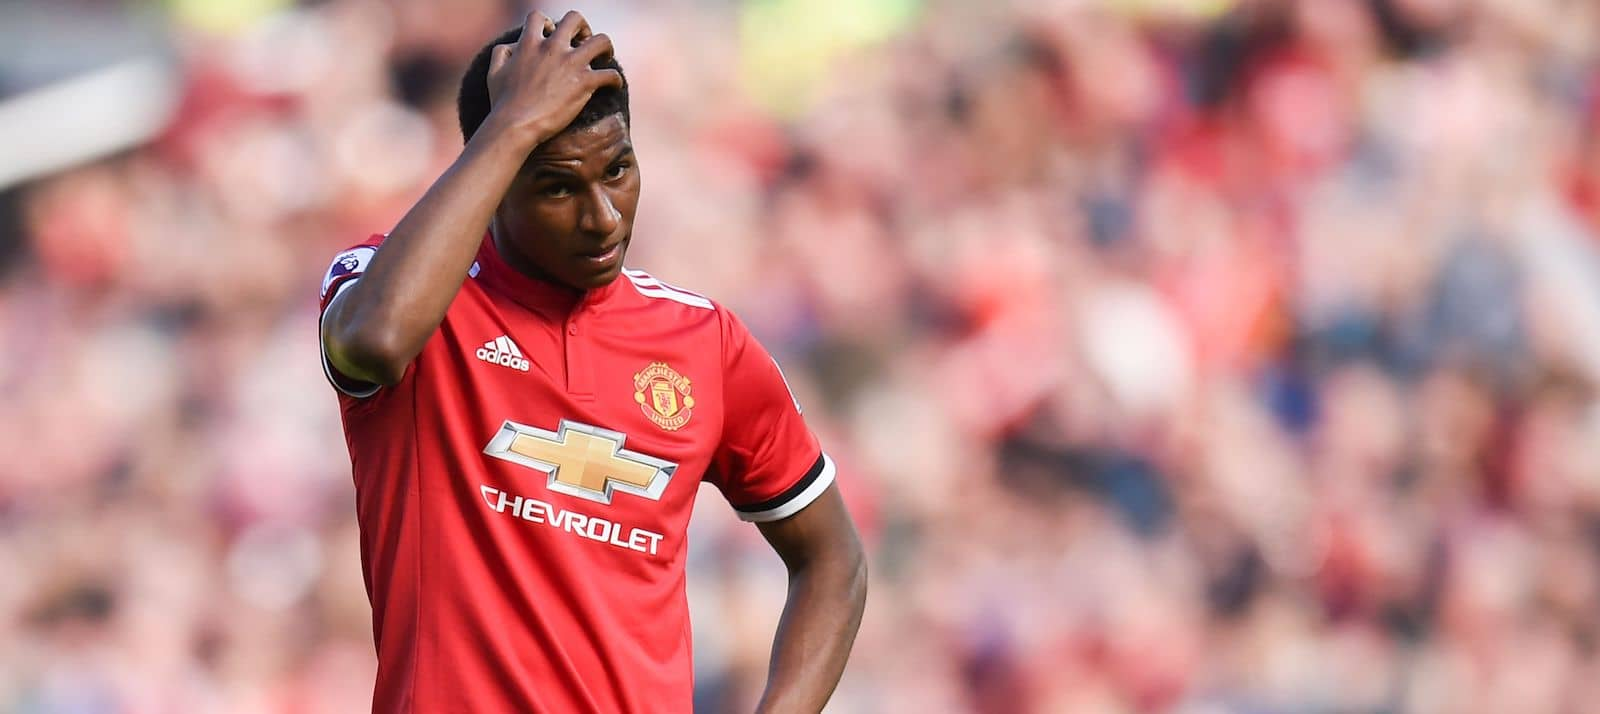 Jose Mourinho annoyed with Marcus Rashford following FA Cup final defeat: report